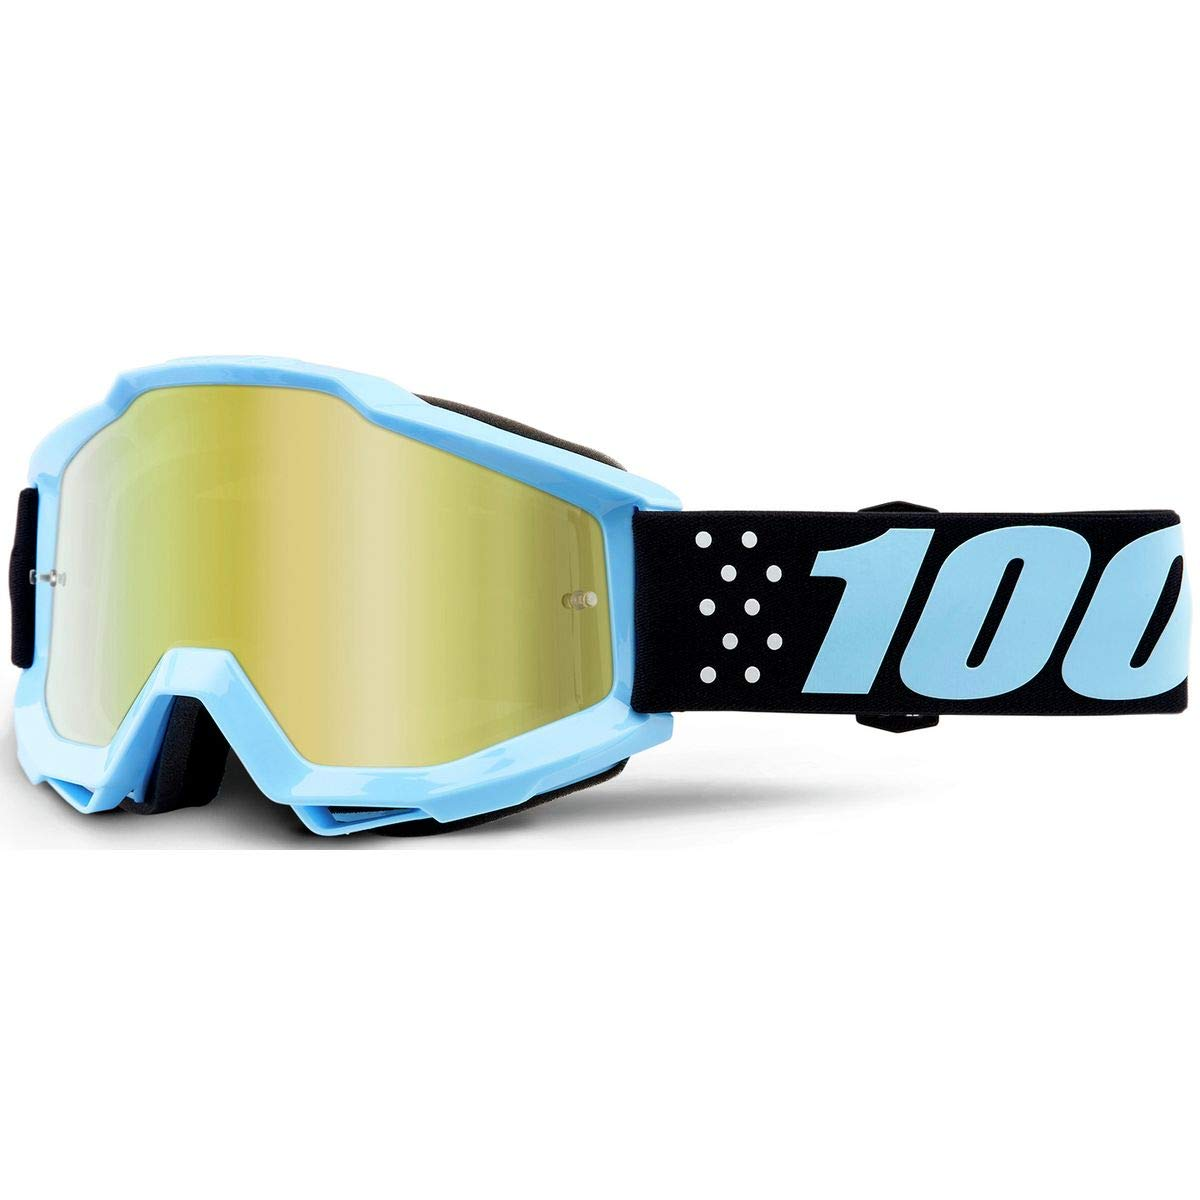 100/% ACCURI Youth Goggles Fluo Yellow Clear Lens One Size